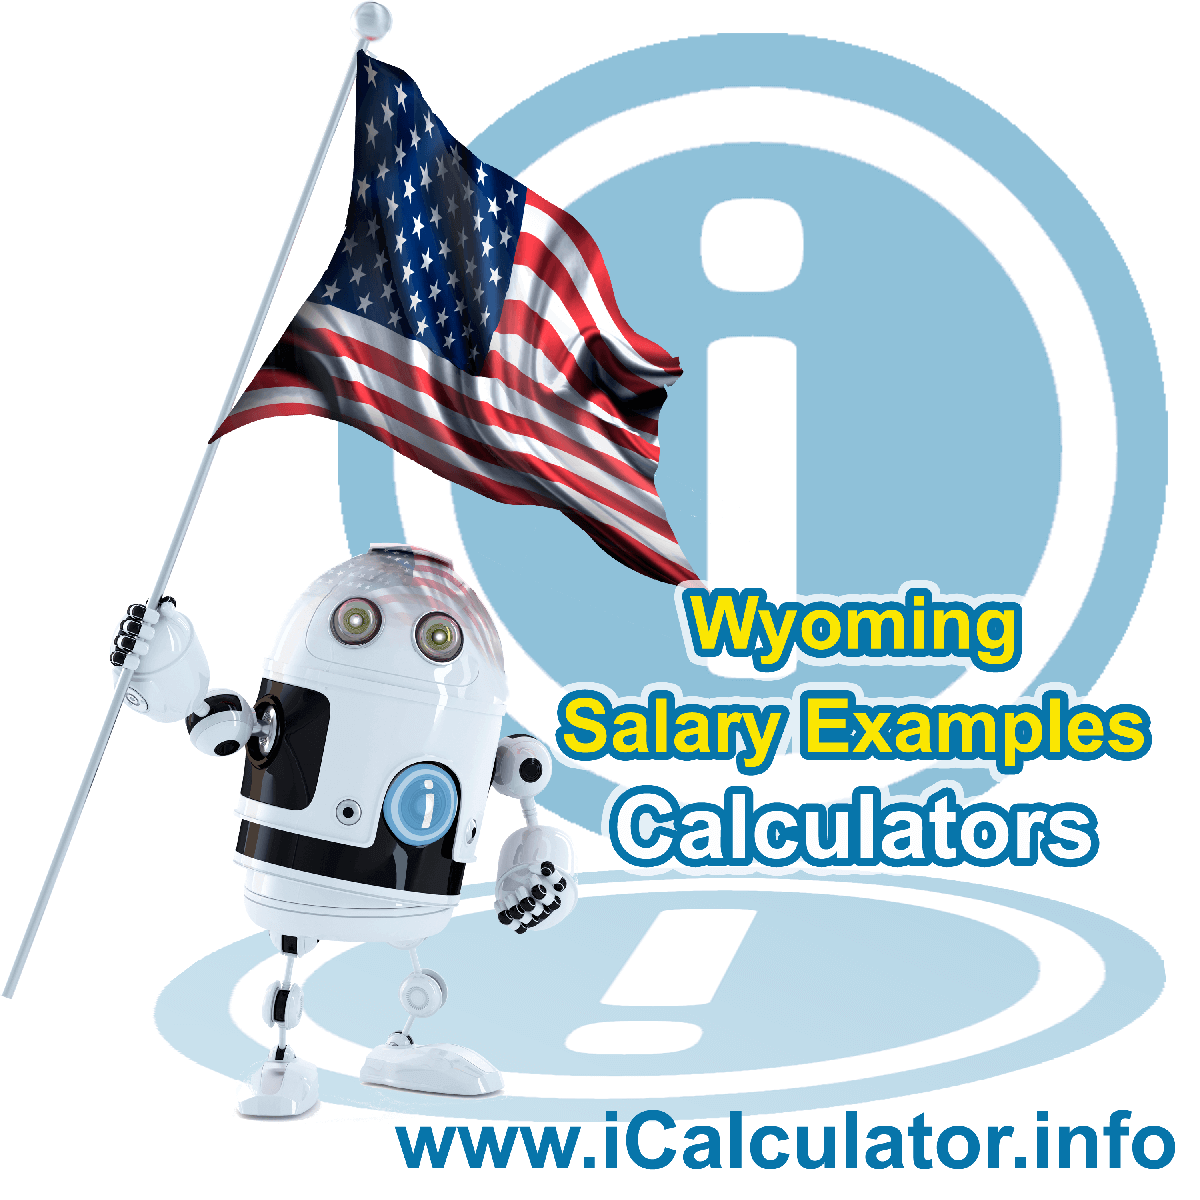 Wyoming Salary Example for $30,000.00 in 2020 | iCalculator | $30,000.00 salary example for employee and employer paying Wyoming State tincome taxes. Detailed salary after tax calculation including Wyoming State Tax, Federal State Tax, Medicare Deductions, Social Security, Capital Gains and other income tax and salary deductions complete with supporting Wyoming state tax tables